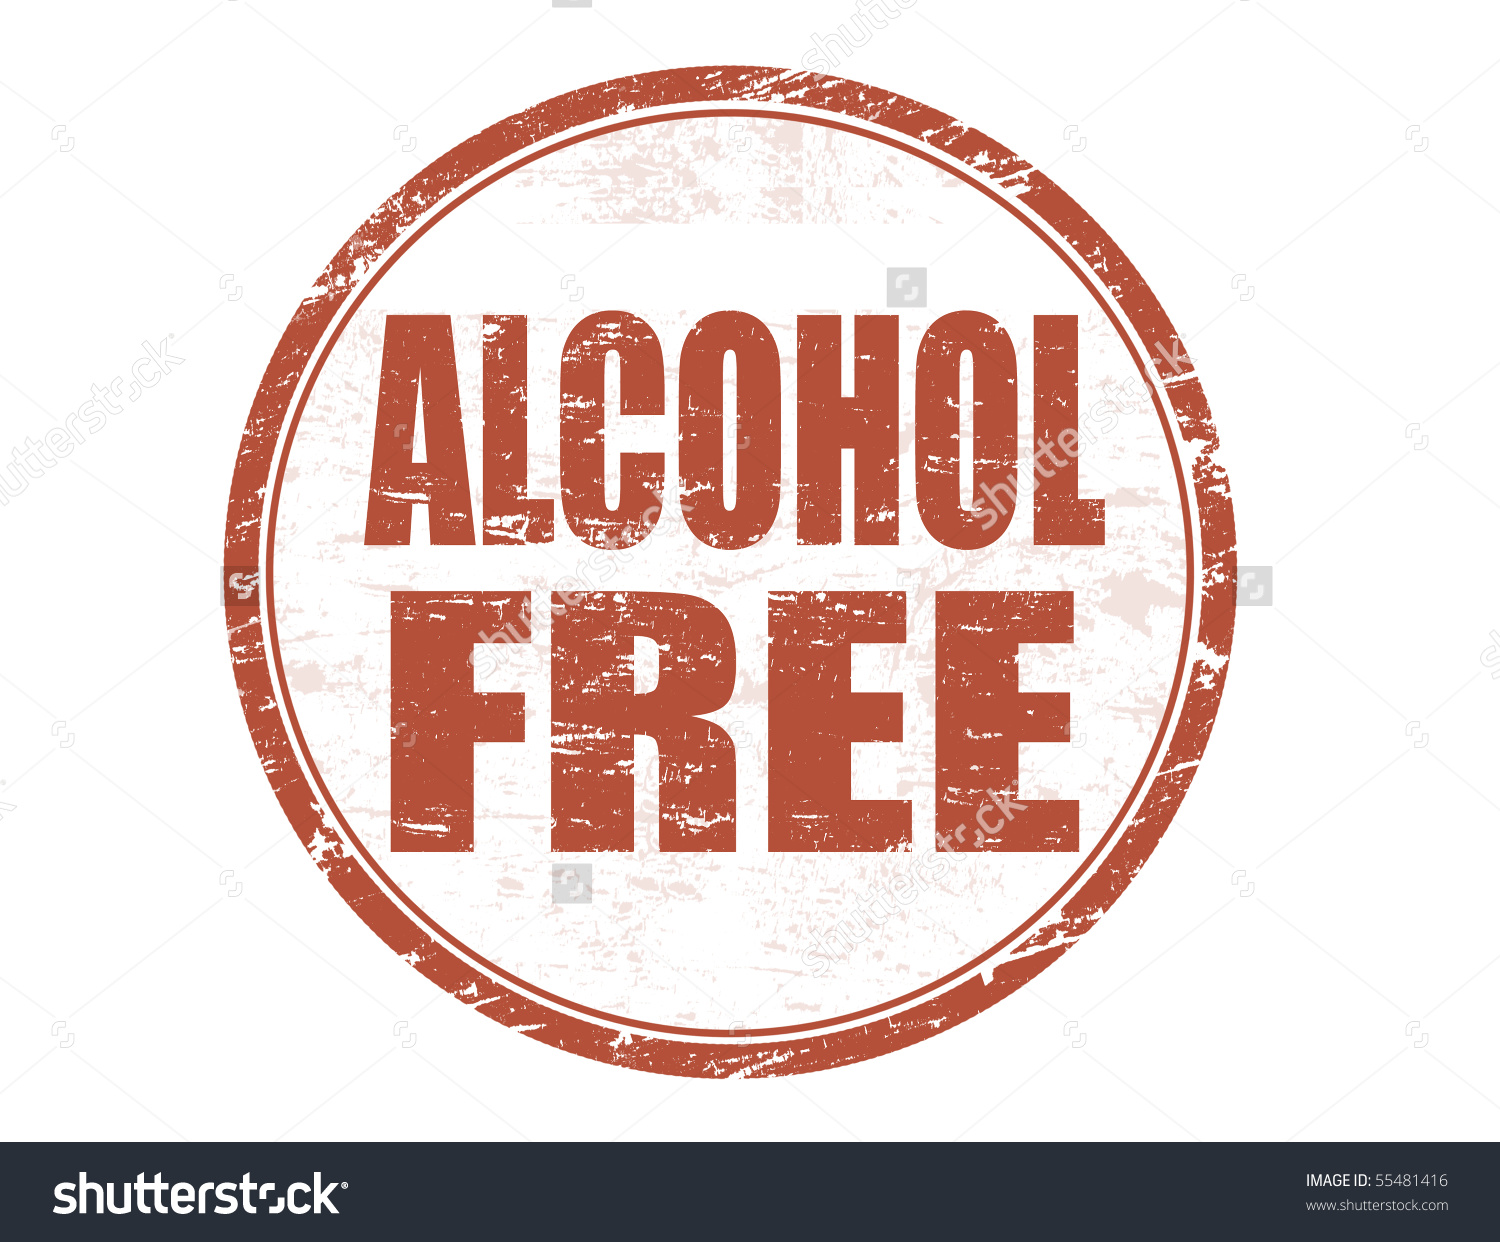 Grunge Stamp Text Alcohol Free Written Stock Vector 55481416.